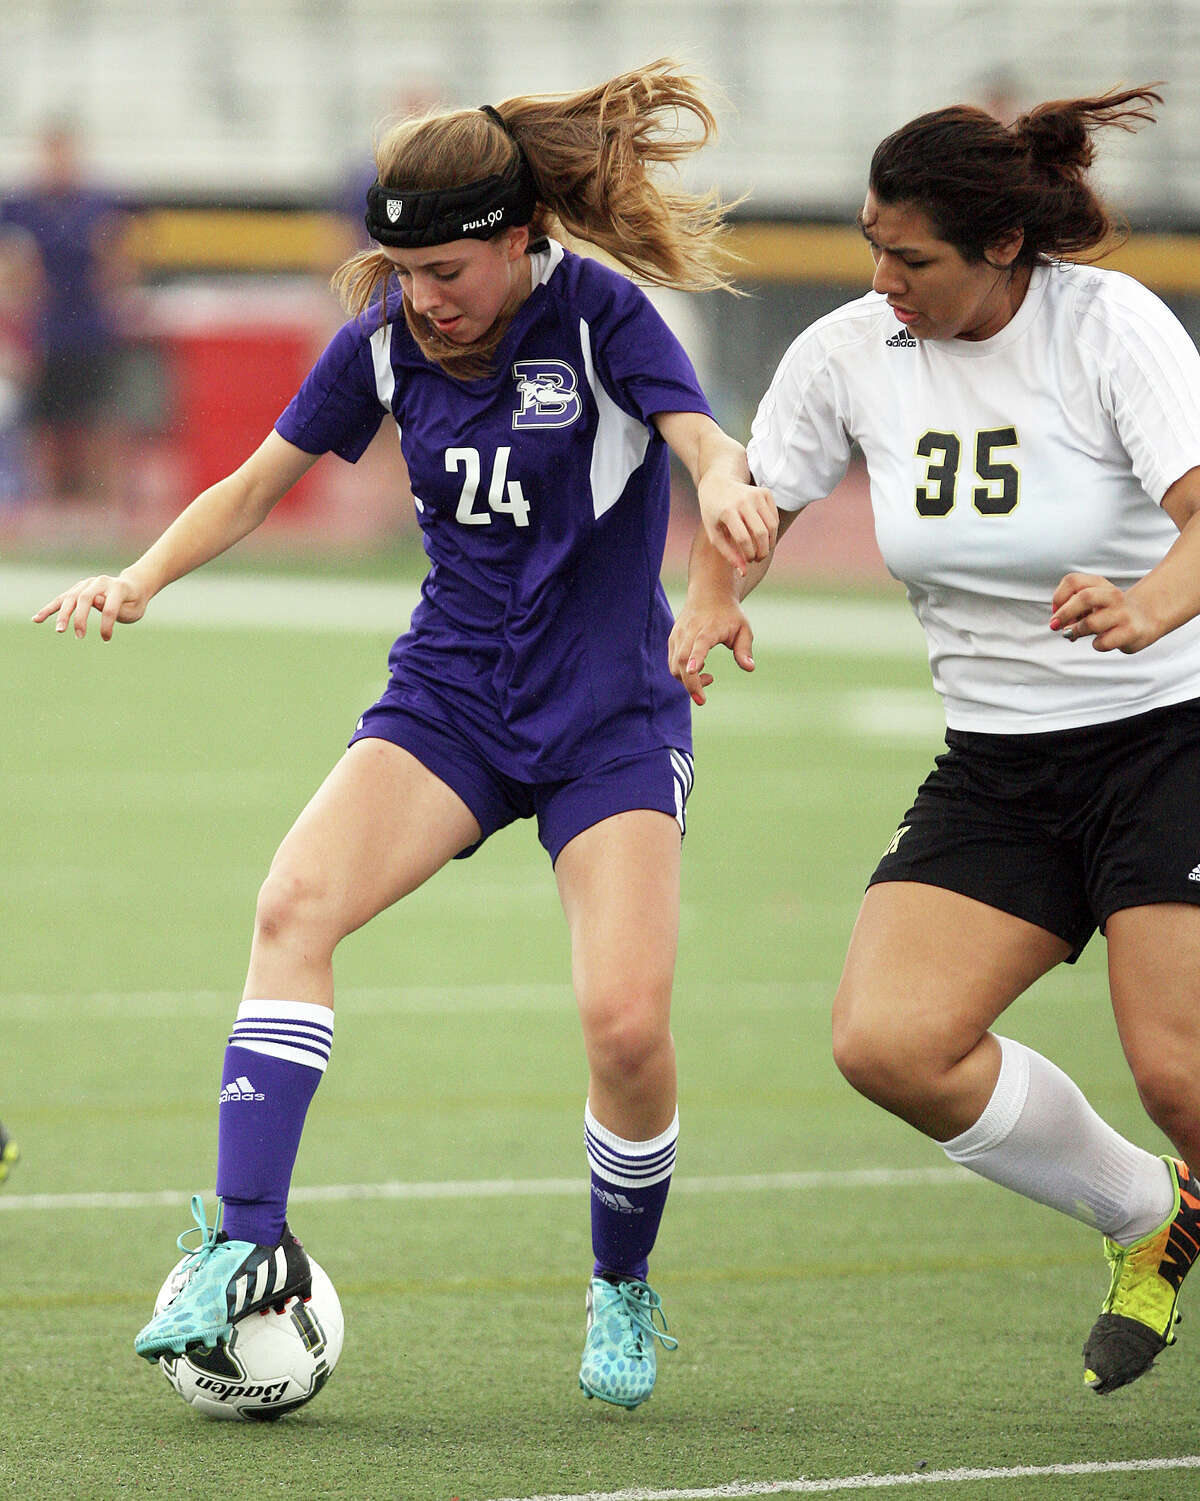 Boerne's Presley Klar, 24, and Kingsville's Mikaylah Perez, 35, battle for the ball in a in a 4A regional semifinal game April 10, 2015 in Mission.